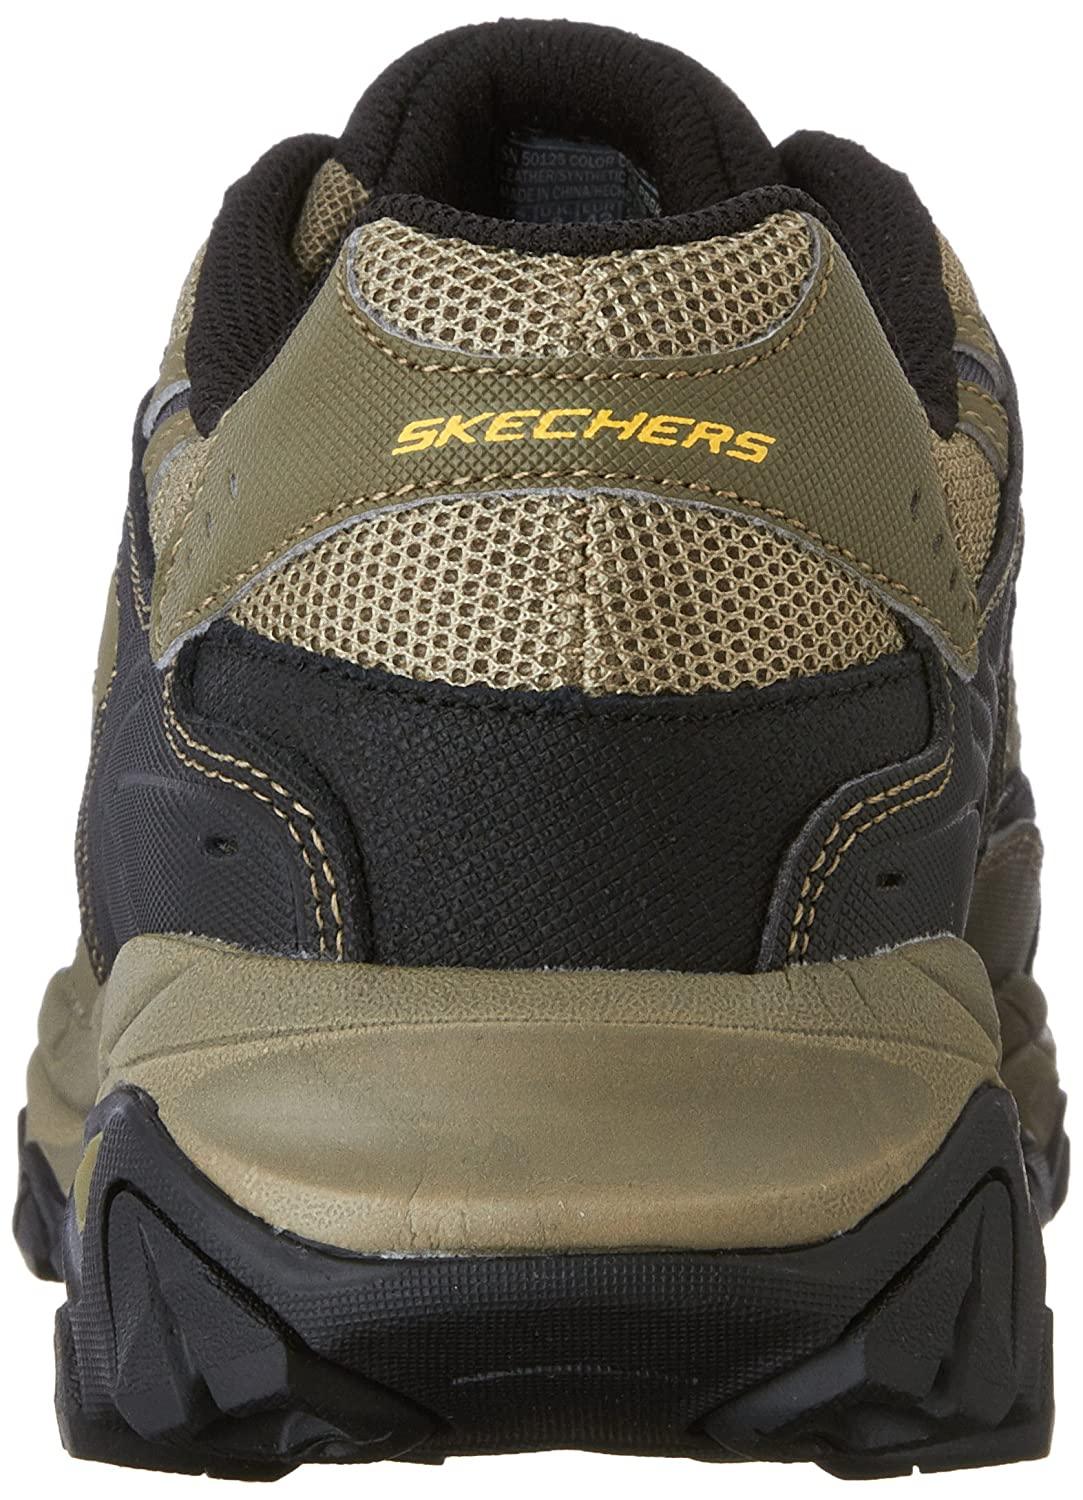 Skechers-Afterburn-Memory-Foam-M-Fit-Men-039-s-Sport-After-Burn-Sneakers-Shoes thumbnail 82